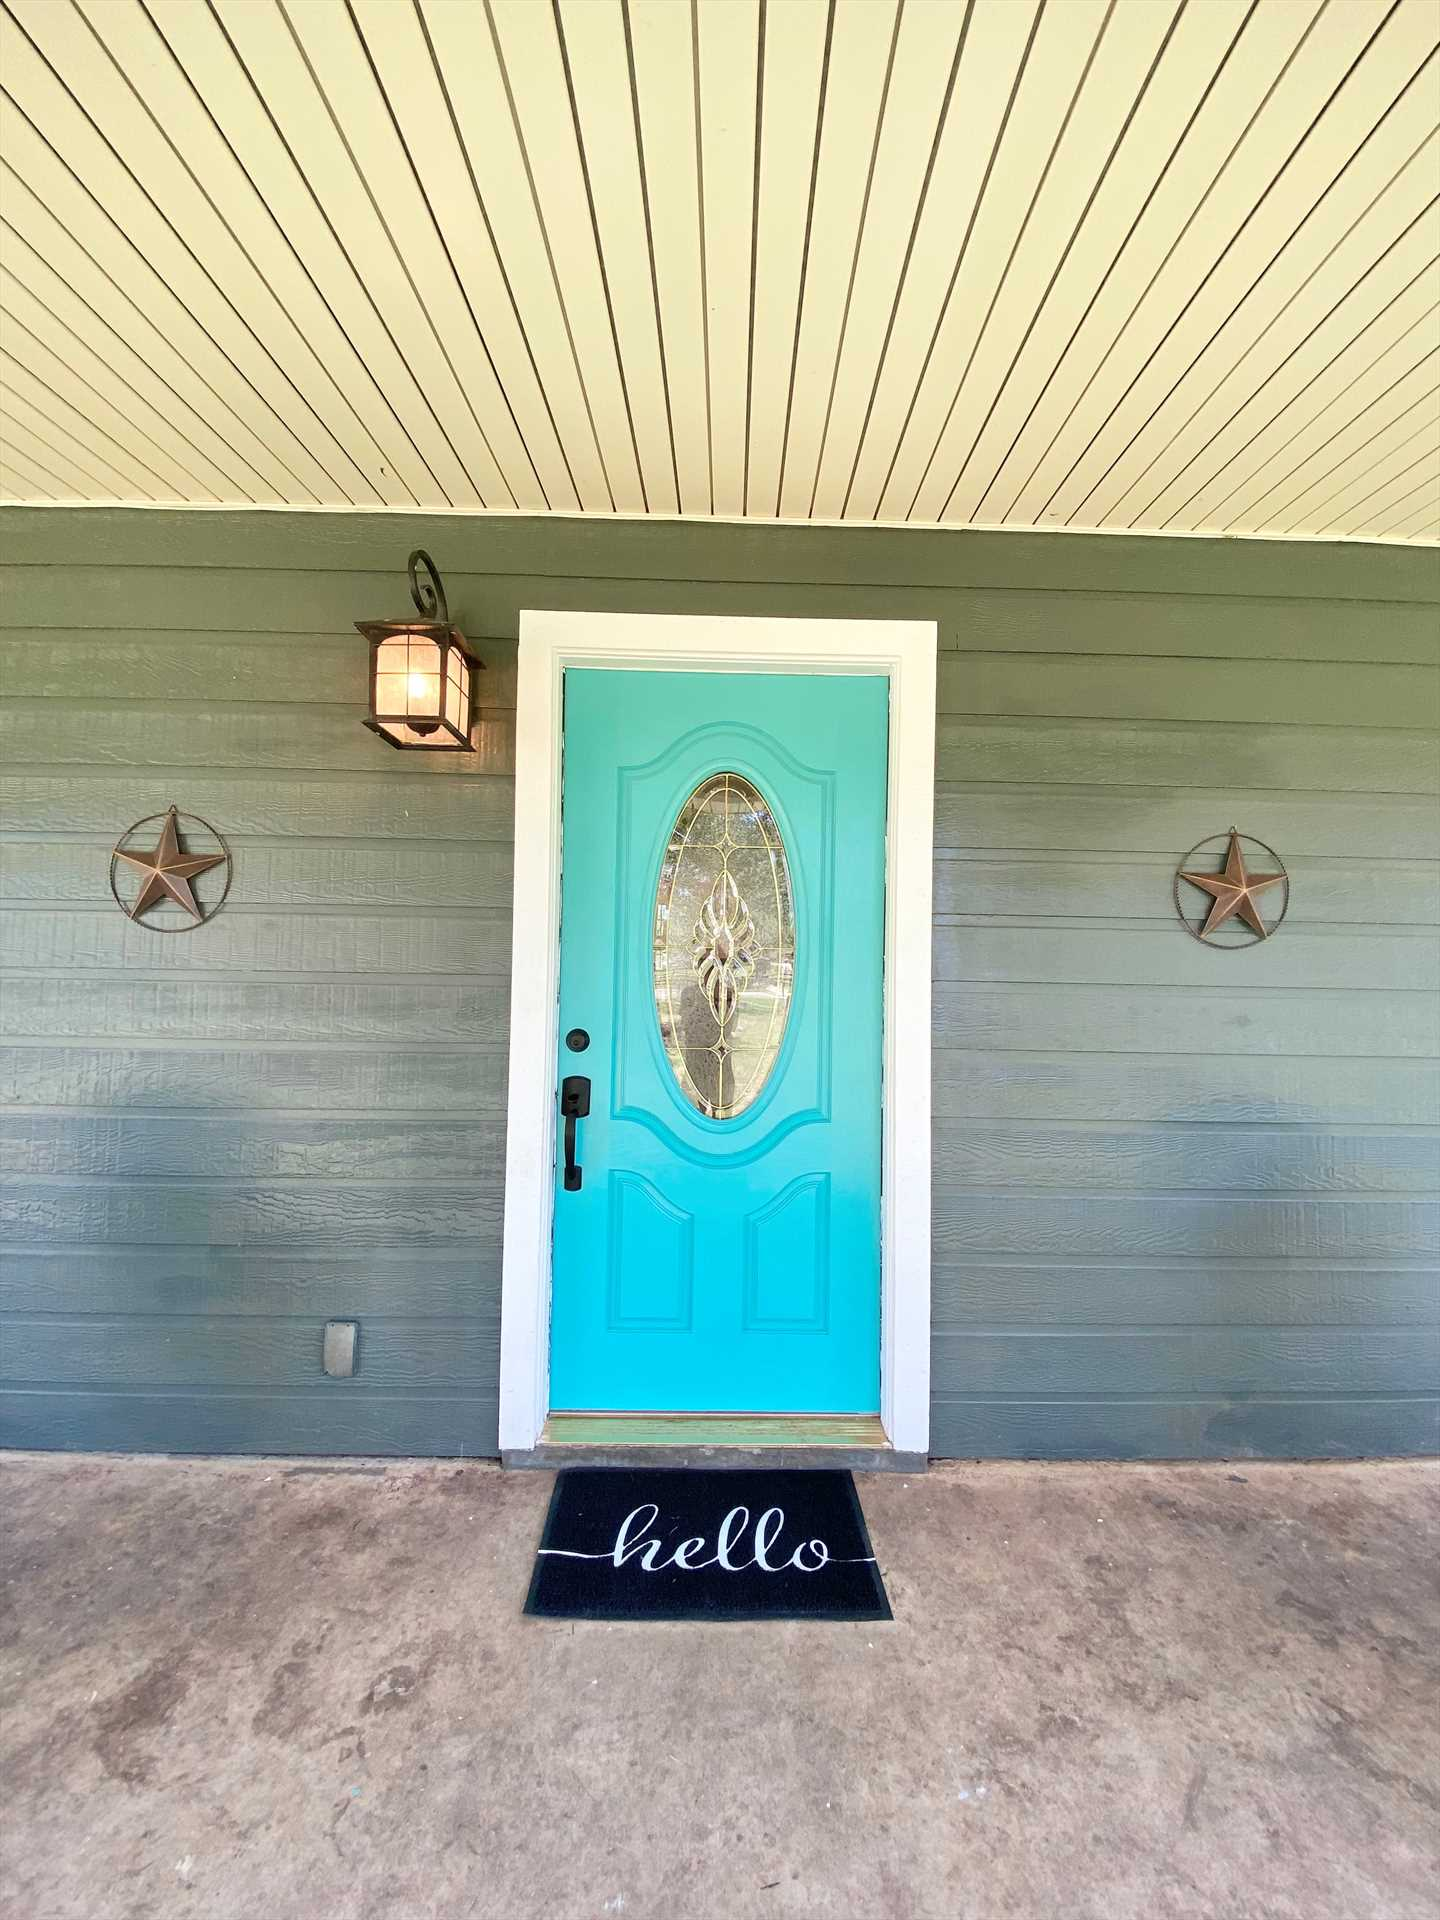 Beyond the colorful and decorative front door lies spacious and classy comfort!